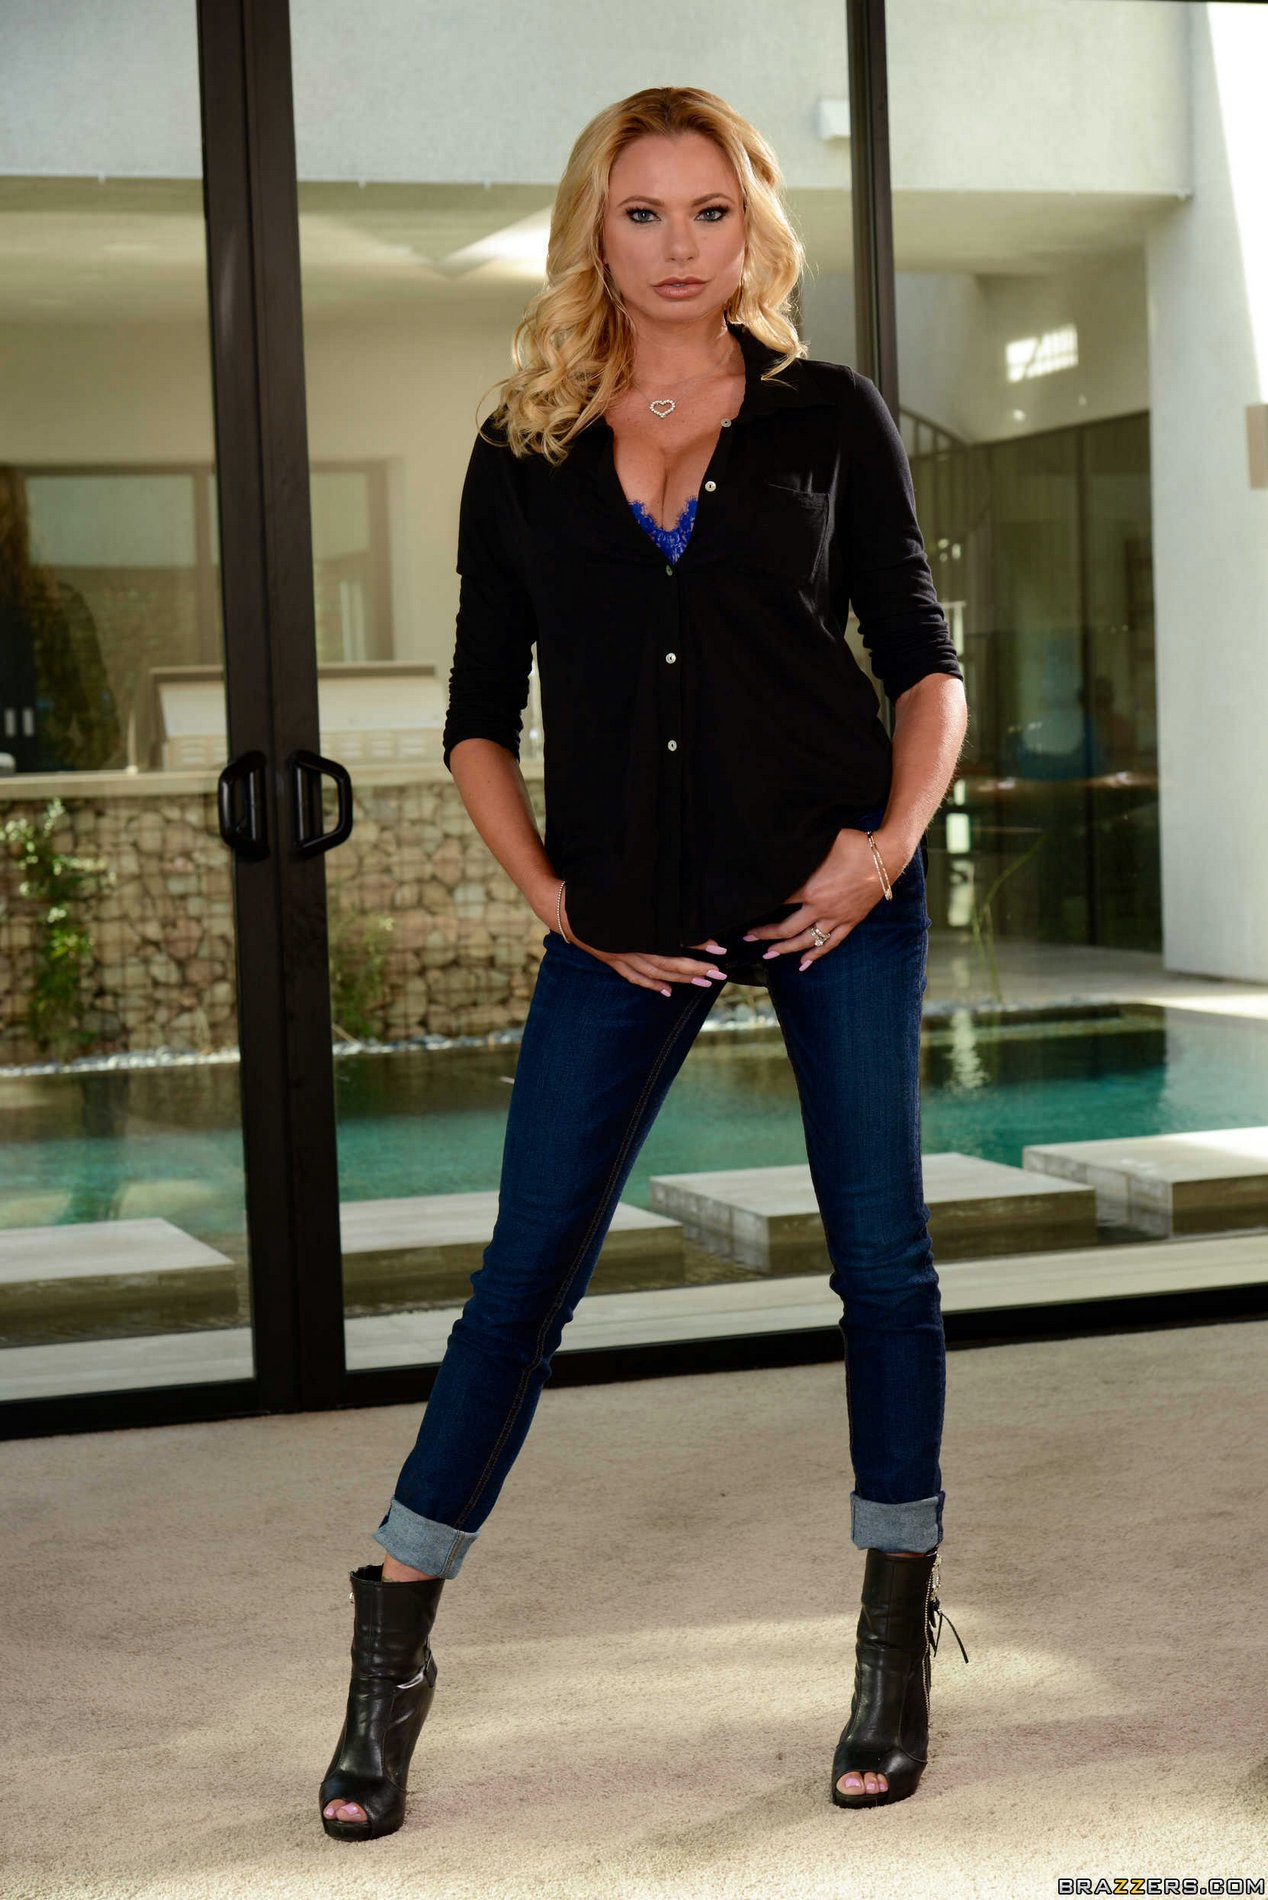 Briana Banks in sexy boots exposing her body - My Pornstar ...